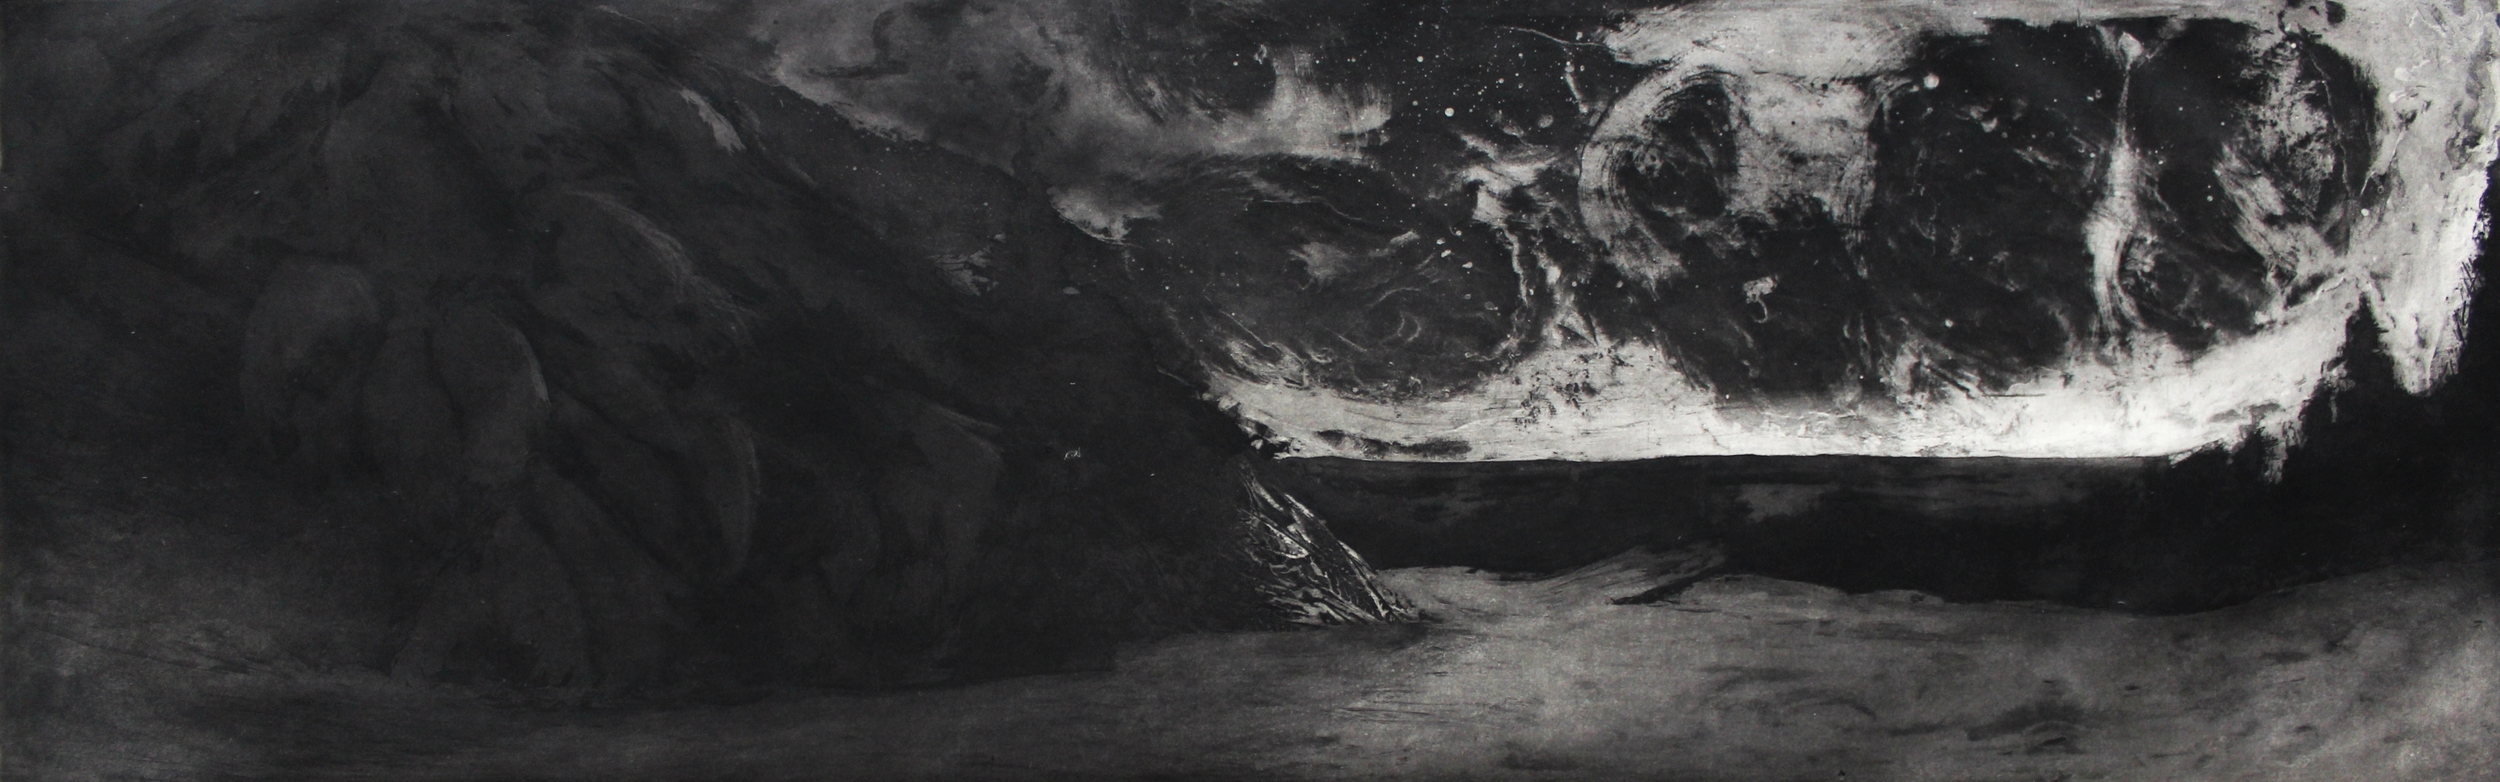 """West Dover, VT State 2, 2014 etching 